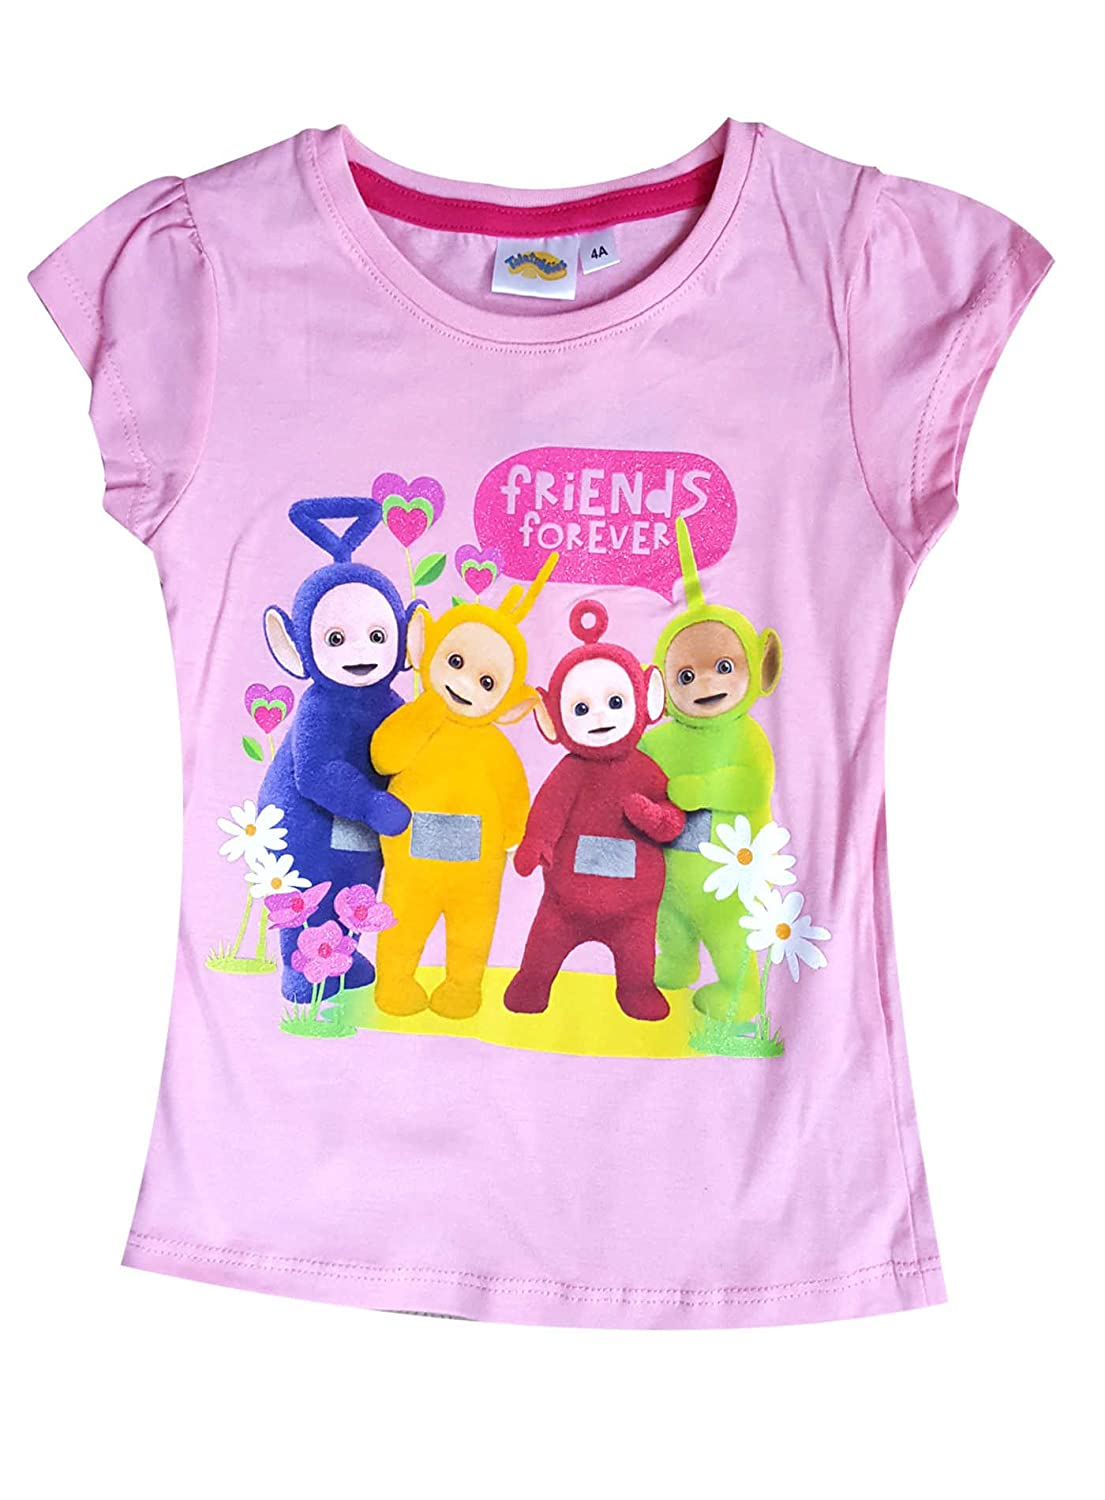 Teletubbies Official Licensed Boys Girls Short Sleeve Top Tshirt Age 2 To 6 Years